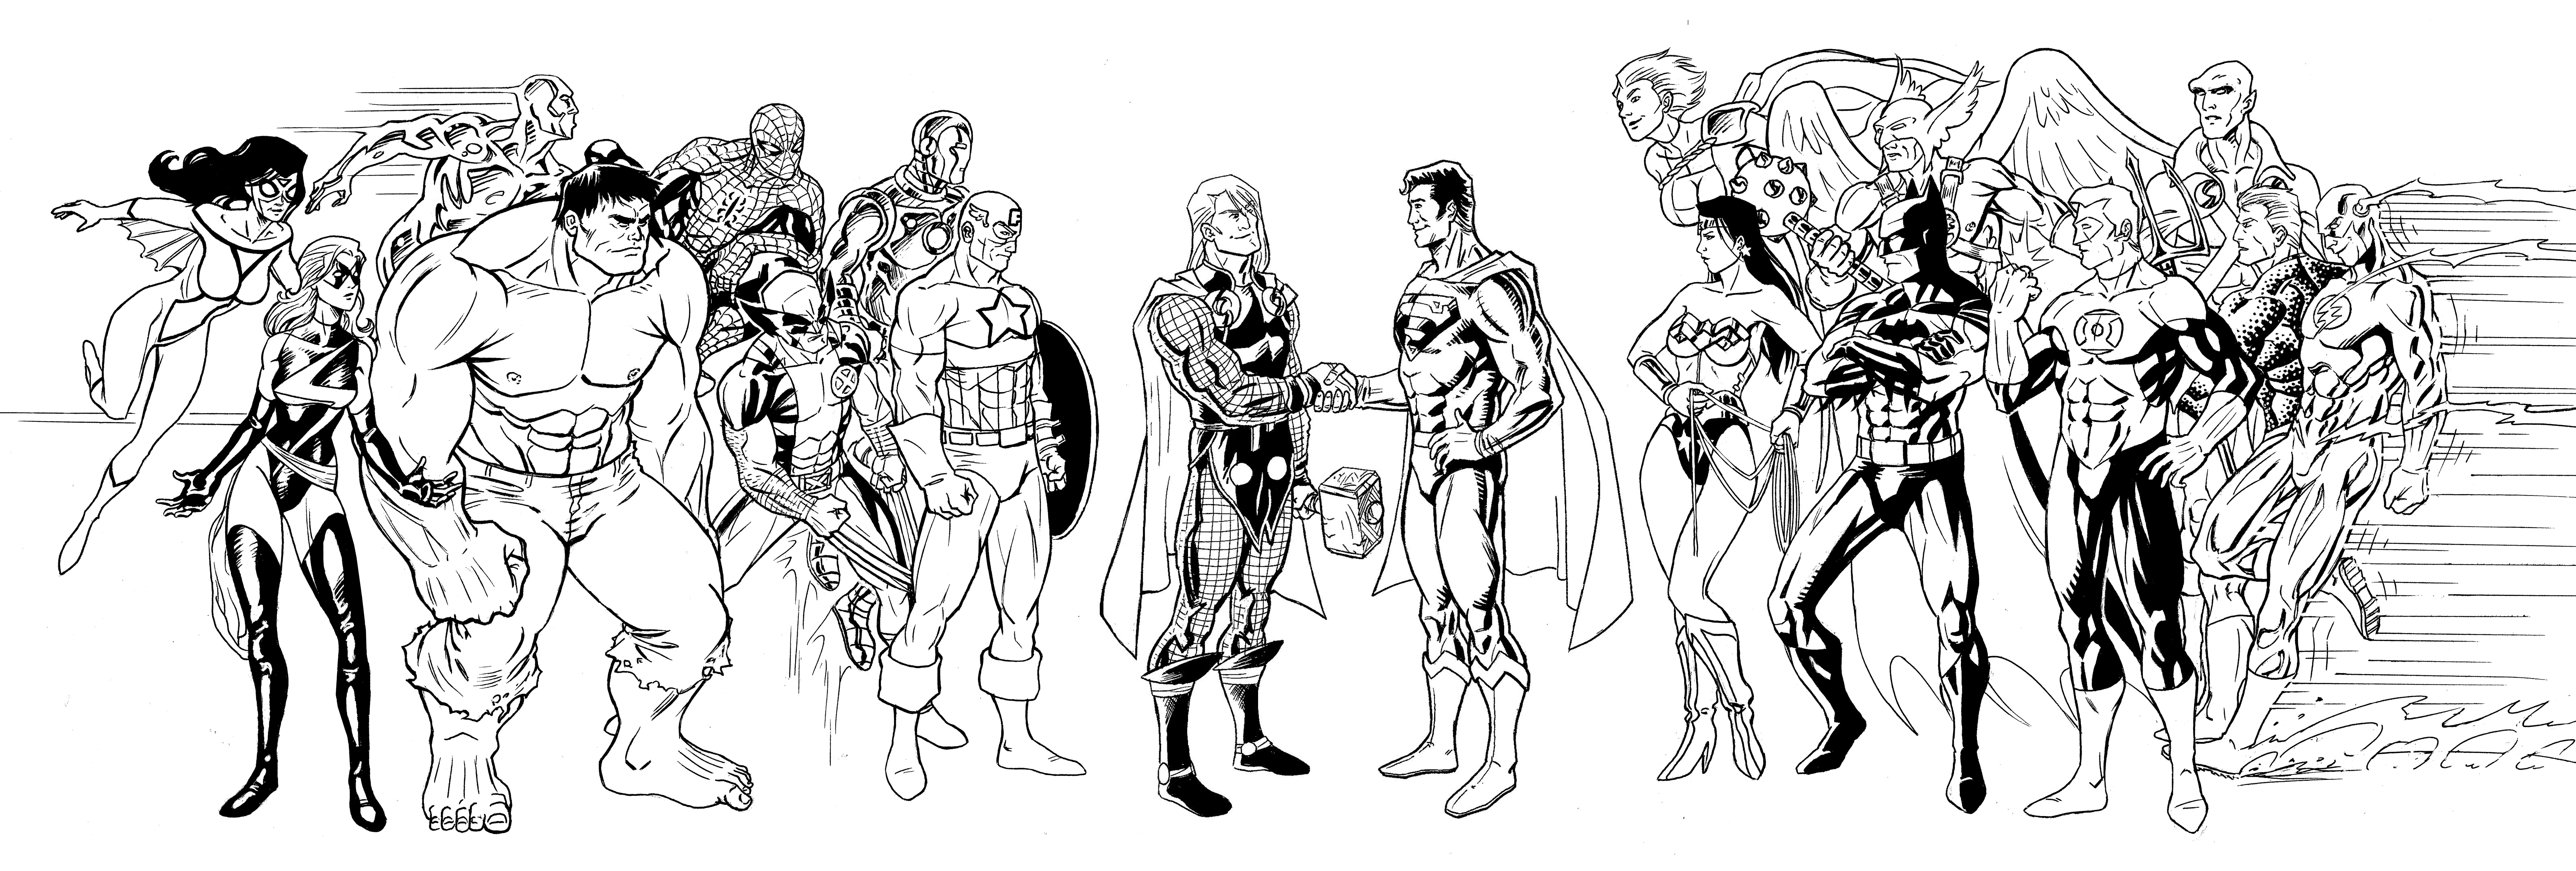 Avengers Team Coloring Pages : Justice league avengers by e v ne on deviantart